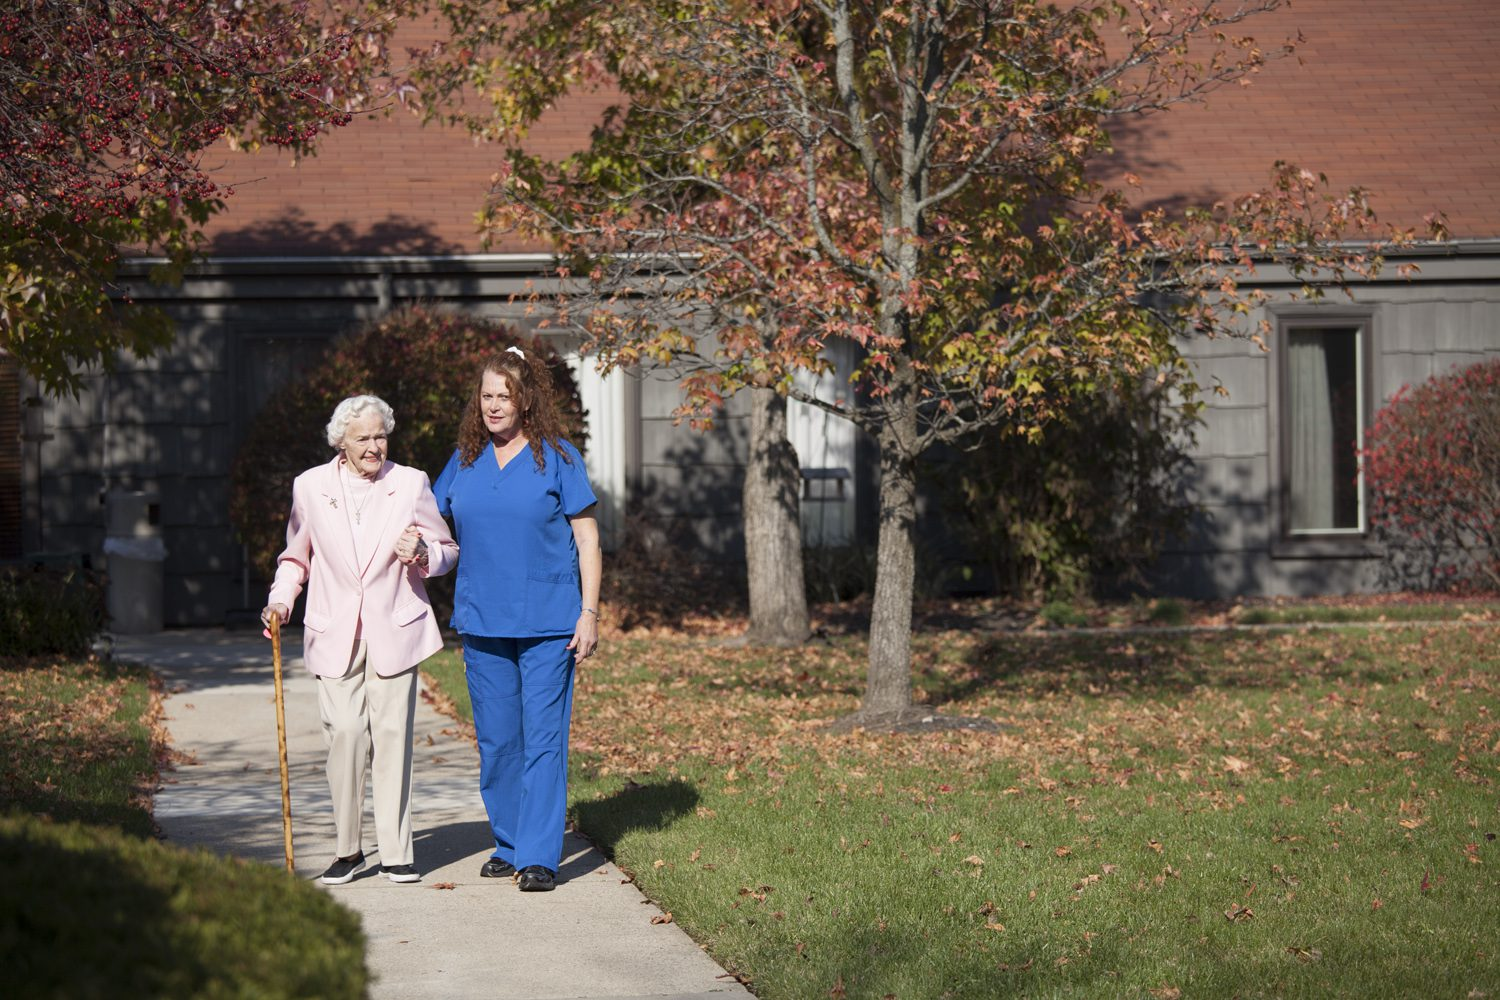 A senior resident at an assisted living and long term care resident walks outside with the help of a staff member